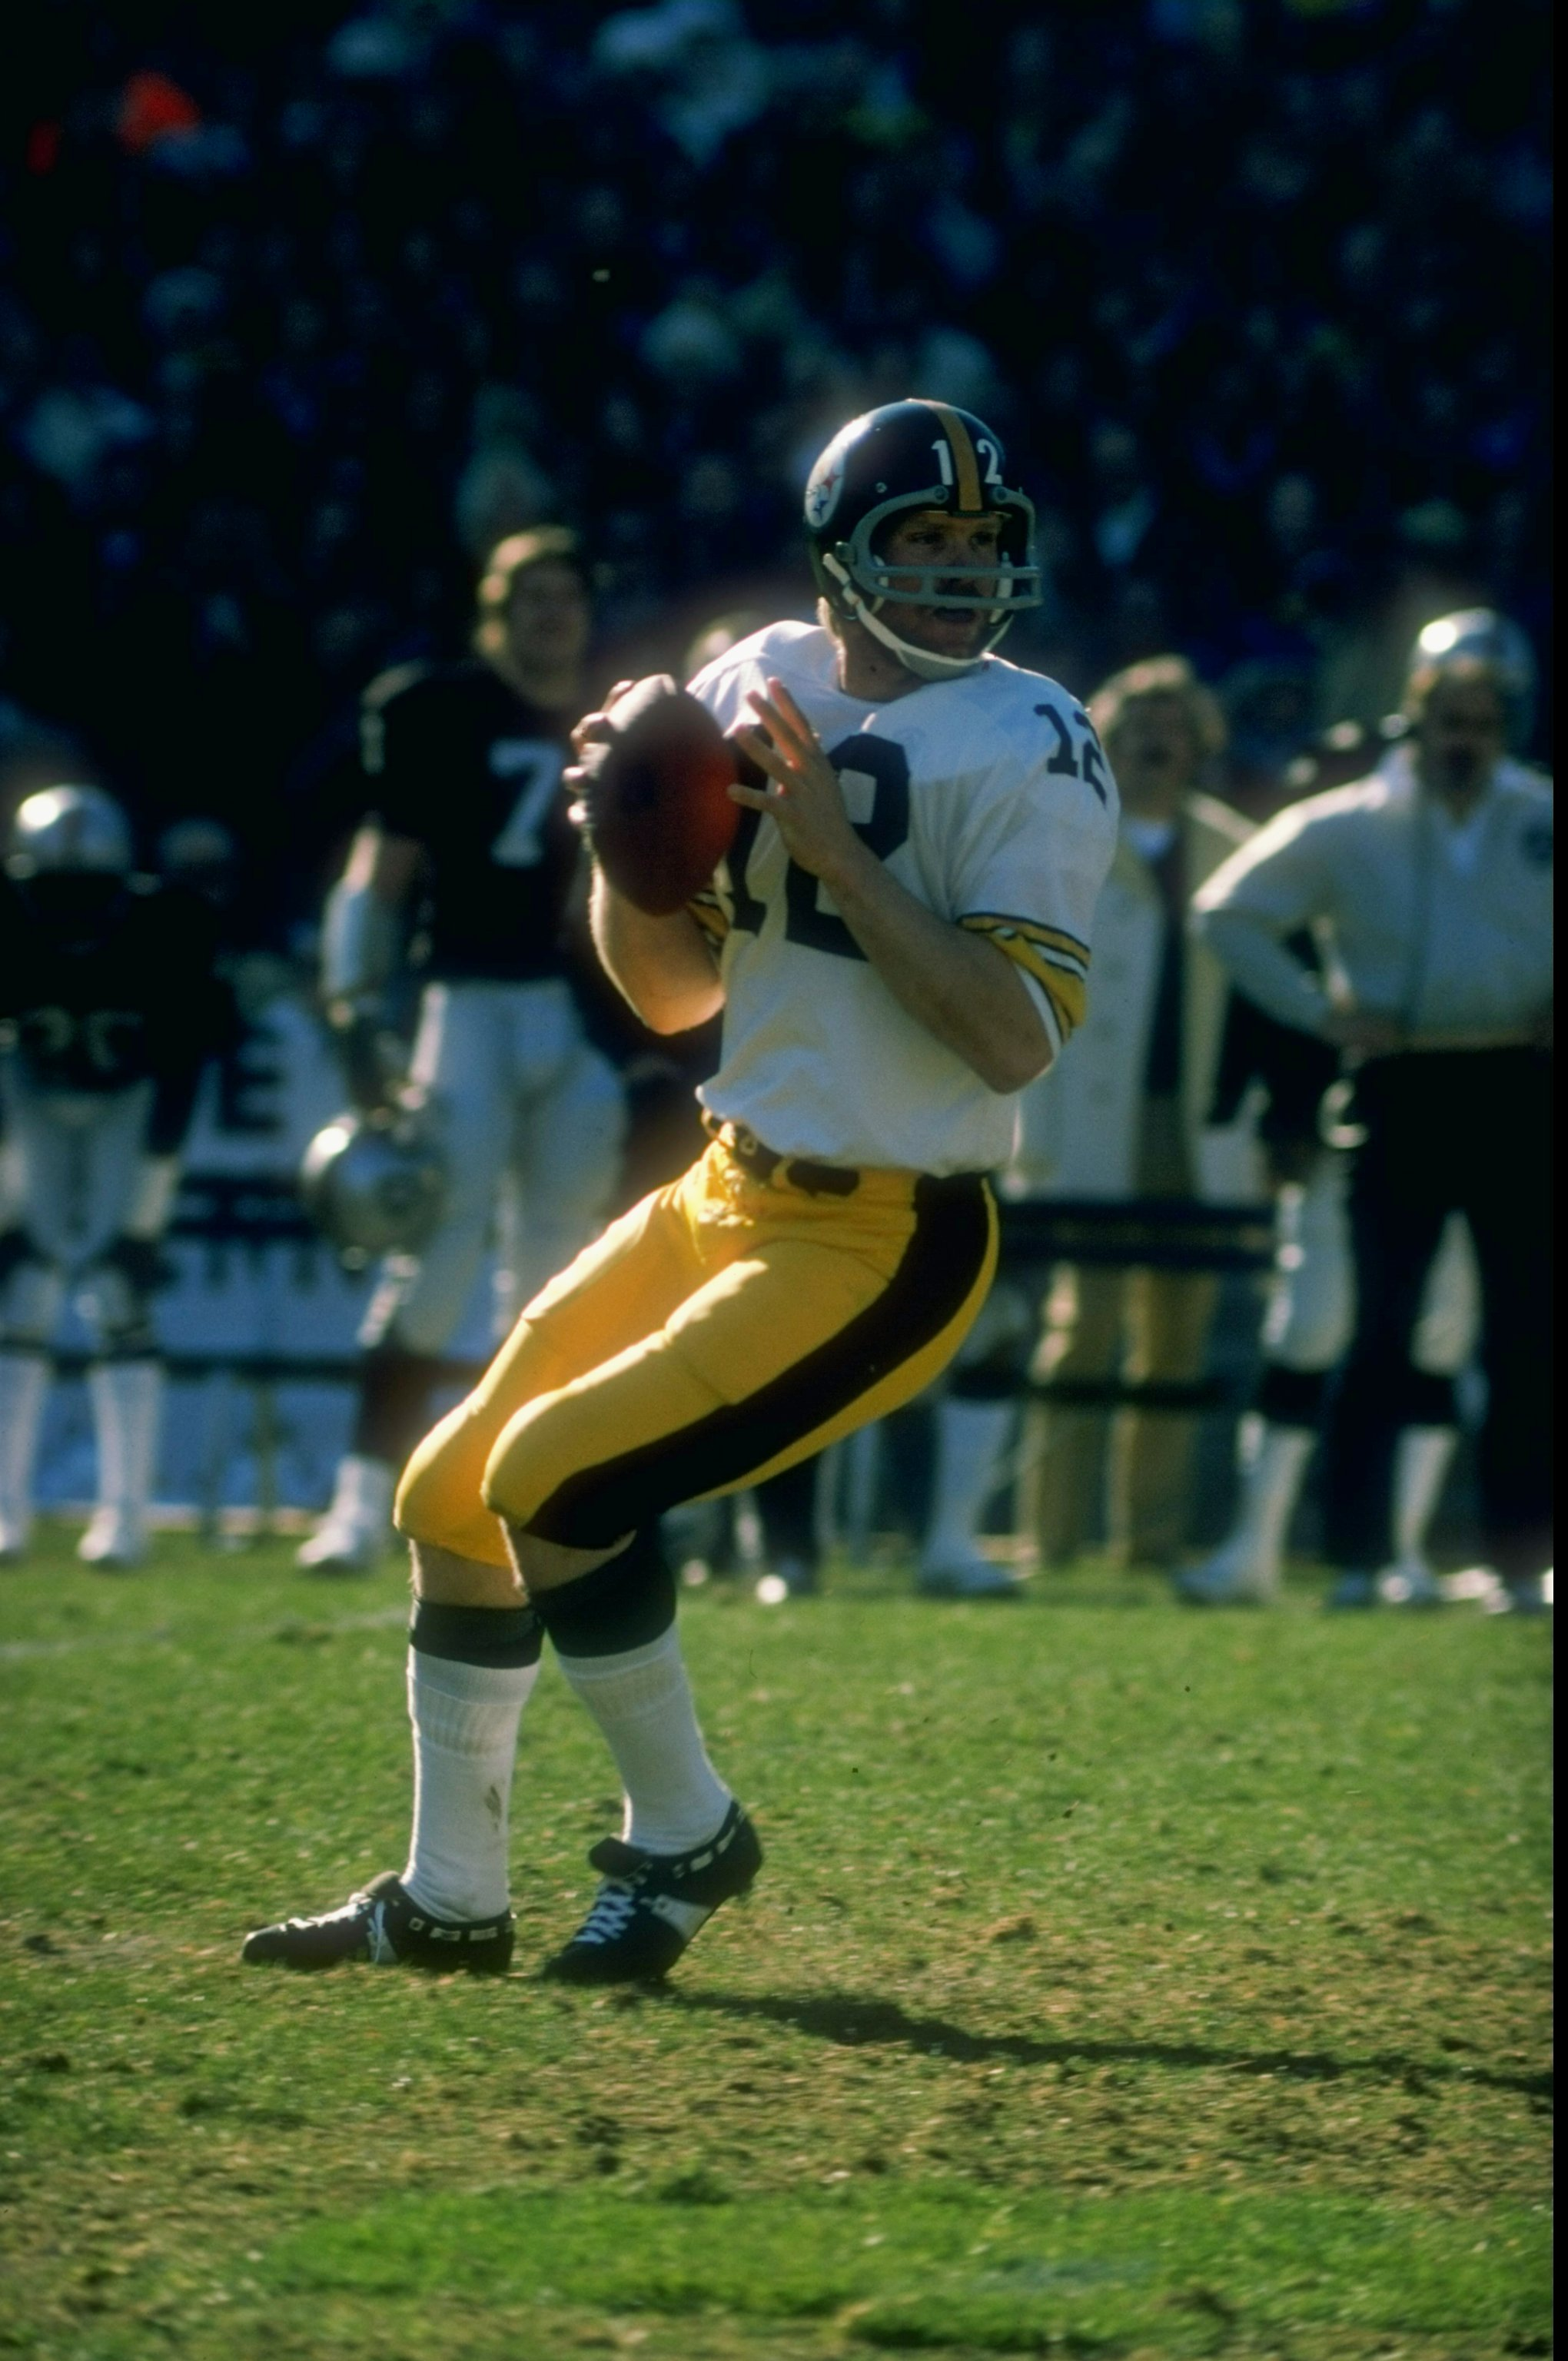 1977:  Quarterback Terry Bradshaw #12 of the Pittsburgh Steelers drops back to pass during a game against the Oakland Raiders at the Oakland Coliseum in Oakland, California. The Raiders defeated the Steelers 16-7. Mandatory Credit: Allsport  /Allsport